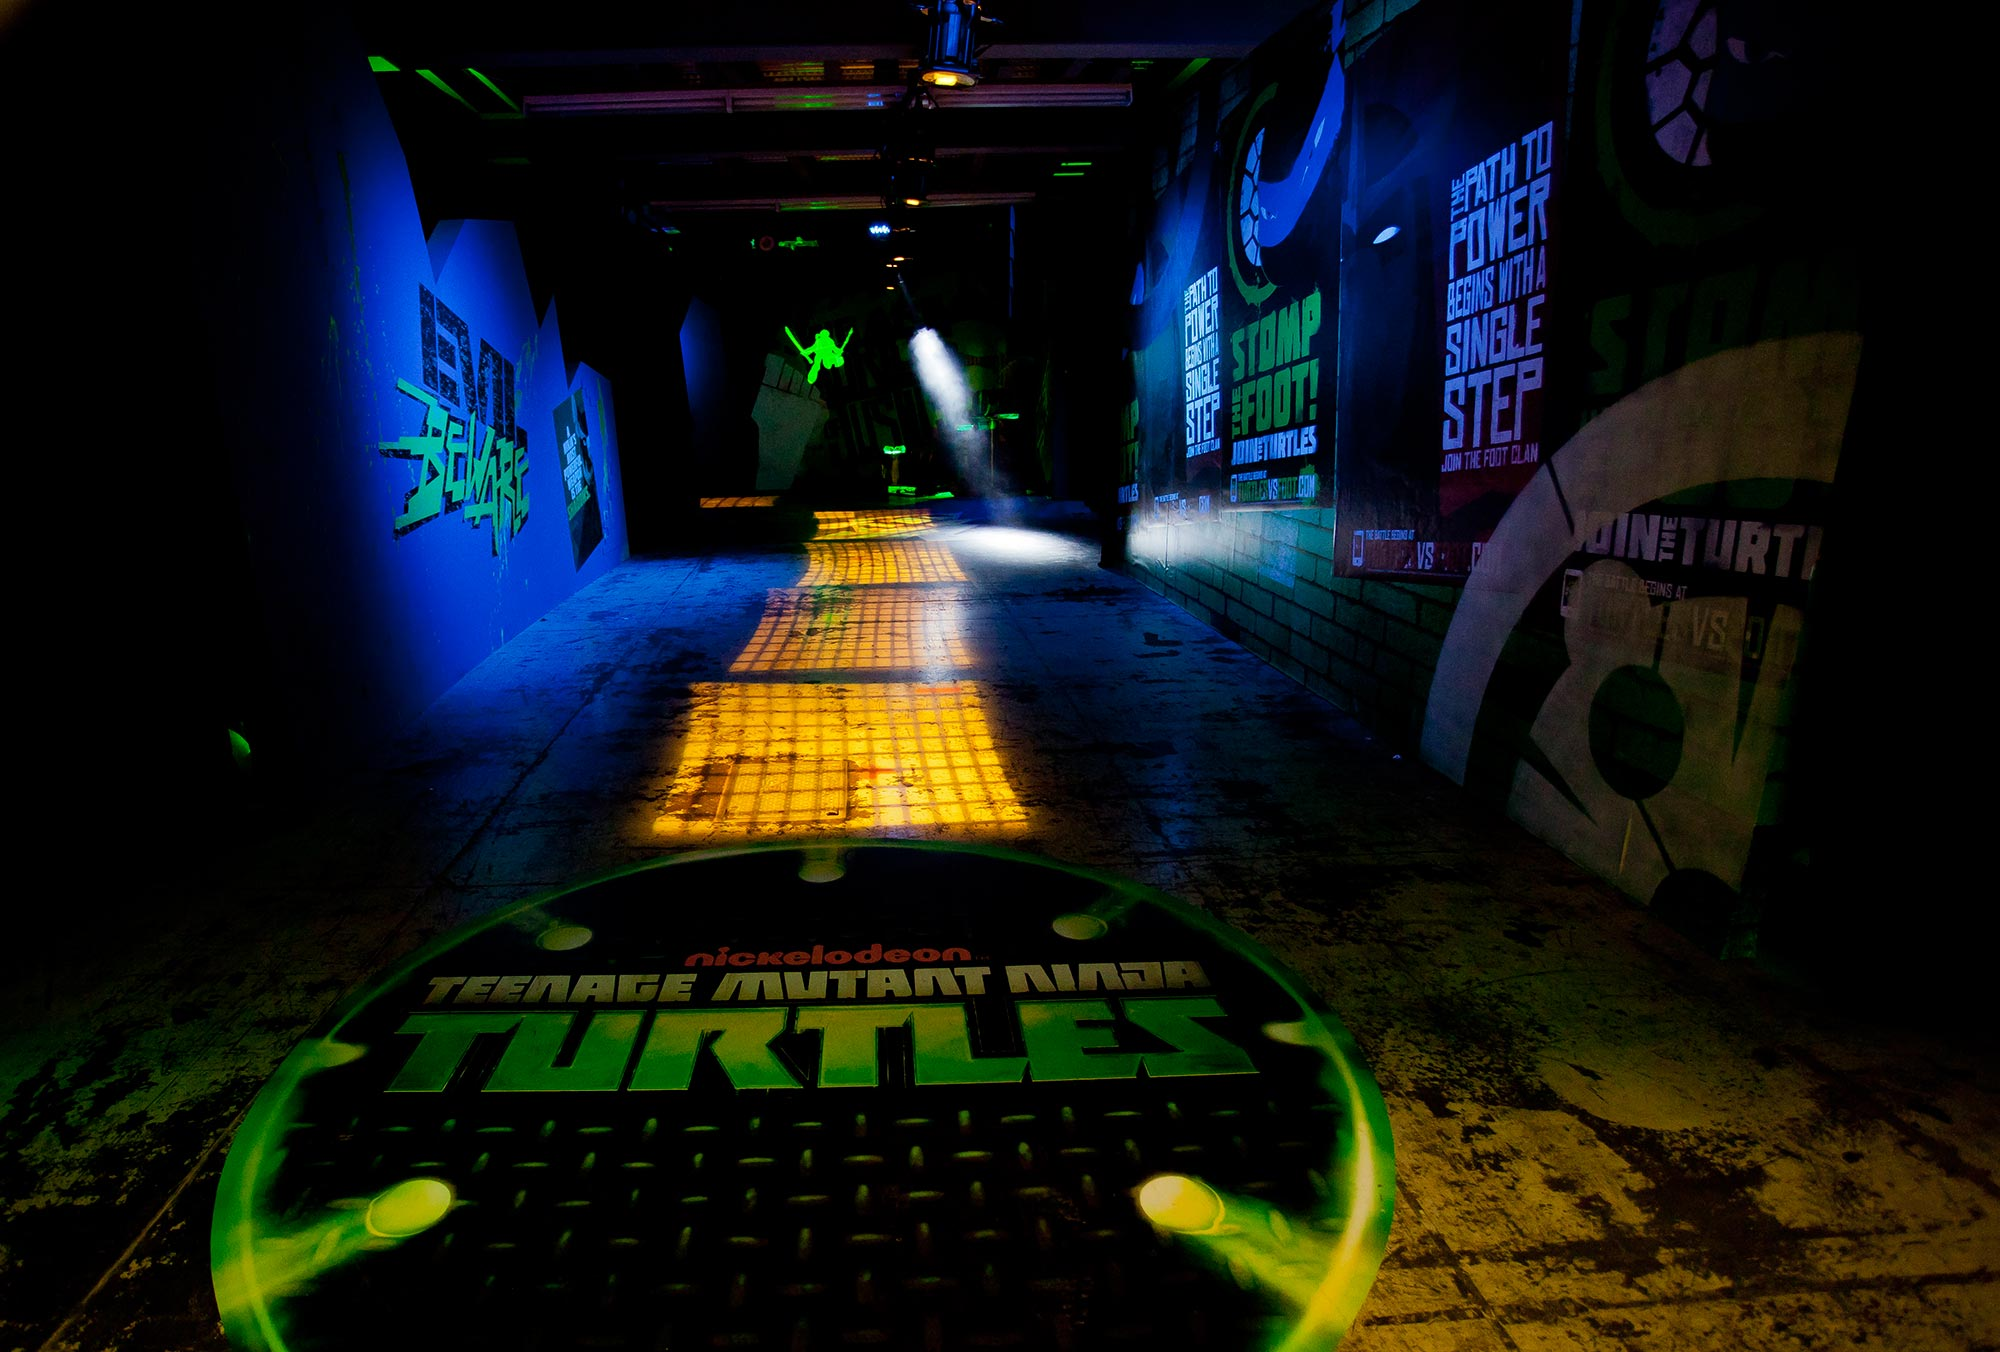 The entire hallway at the Javitz Center was transformed to resemble the TMNT iconic lair while serving as a main thoroughfare to activities at New York Comic Con.